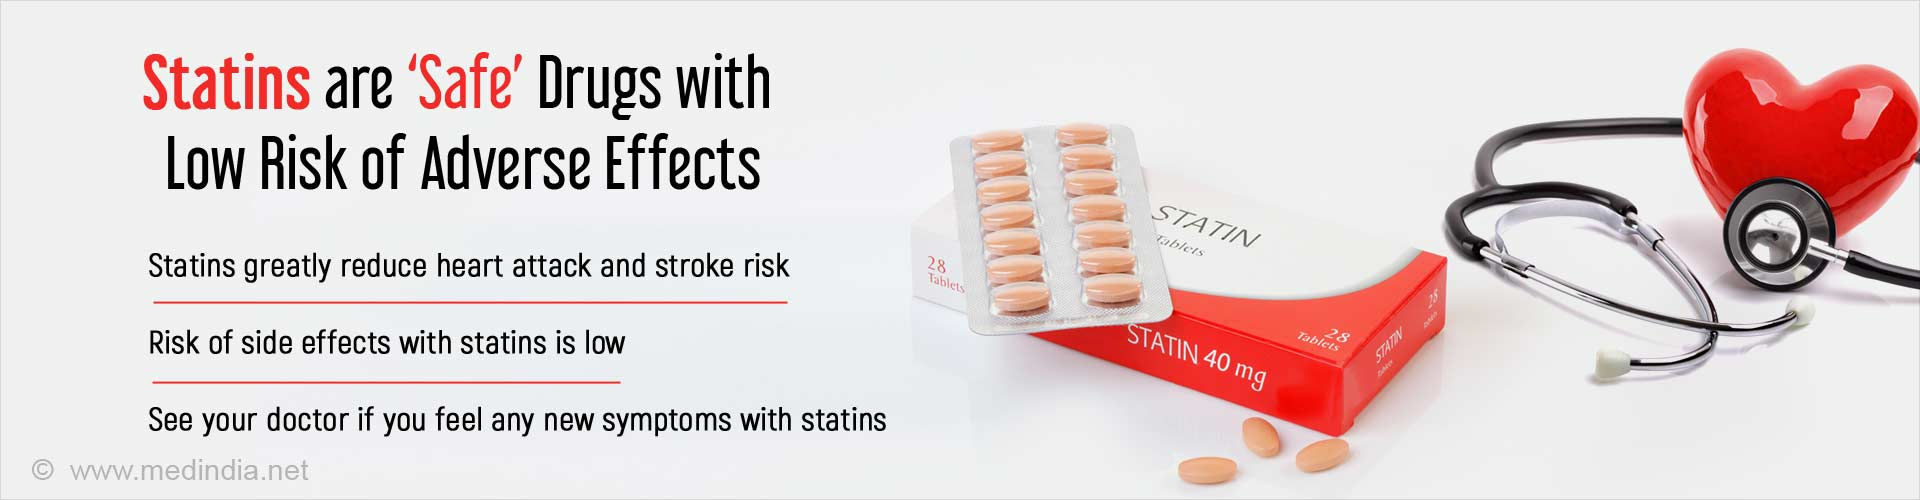 Benefits of Taking Statins Outweigh Risks